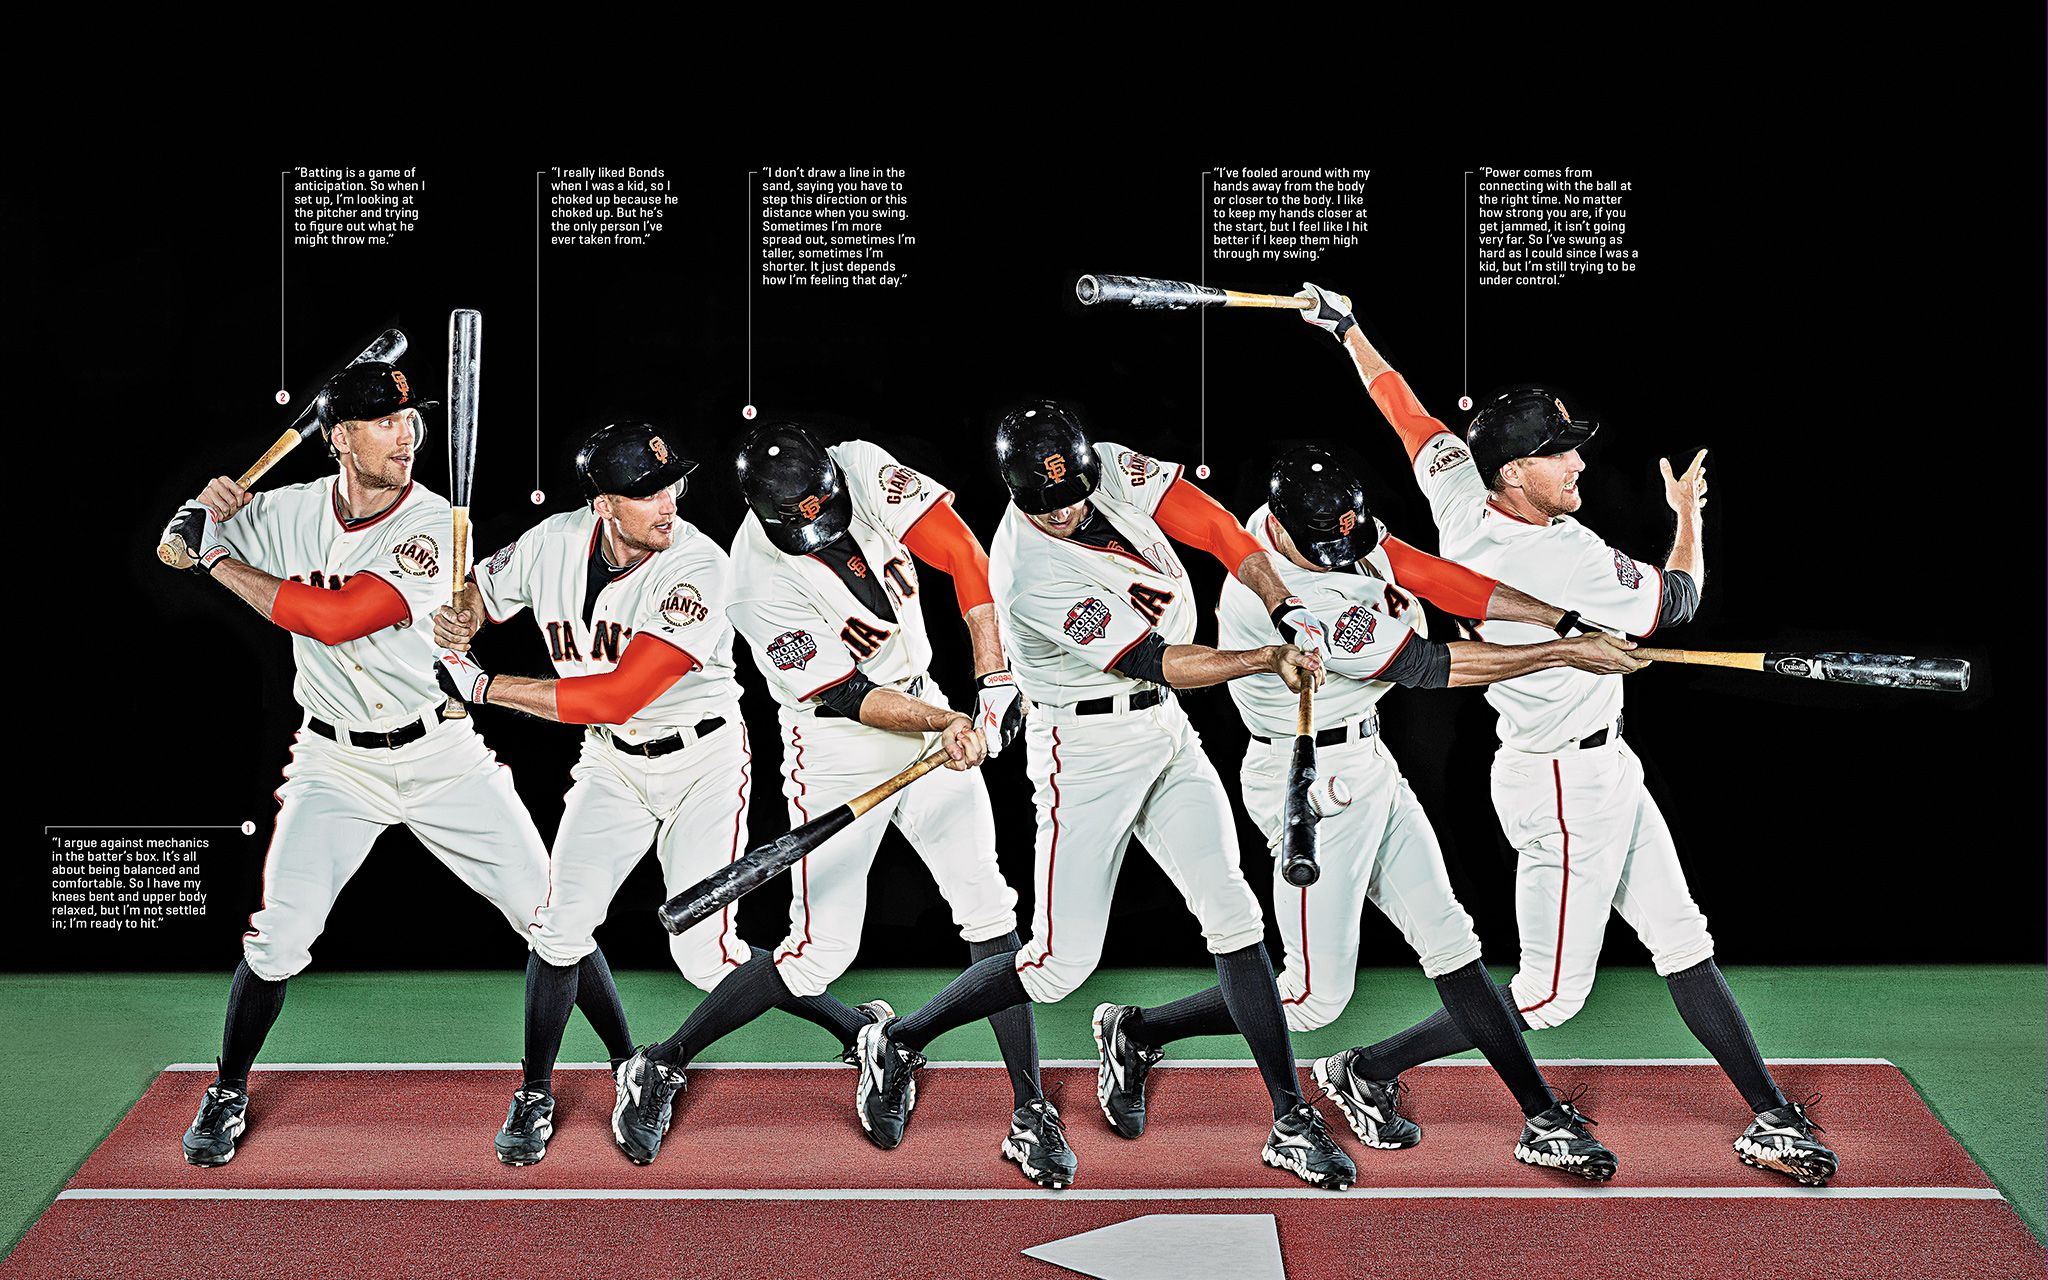 A Sequence Photo Of Hunter Pence For Espn Magazine S Perfect Issue On His Unorthodox Batting S Sf Giants Baseball Sf Giants San Francisco Giants Baseball